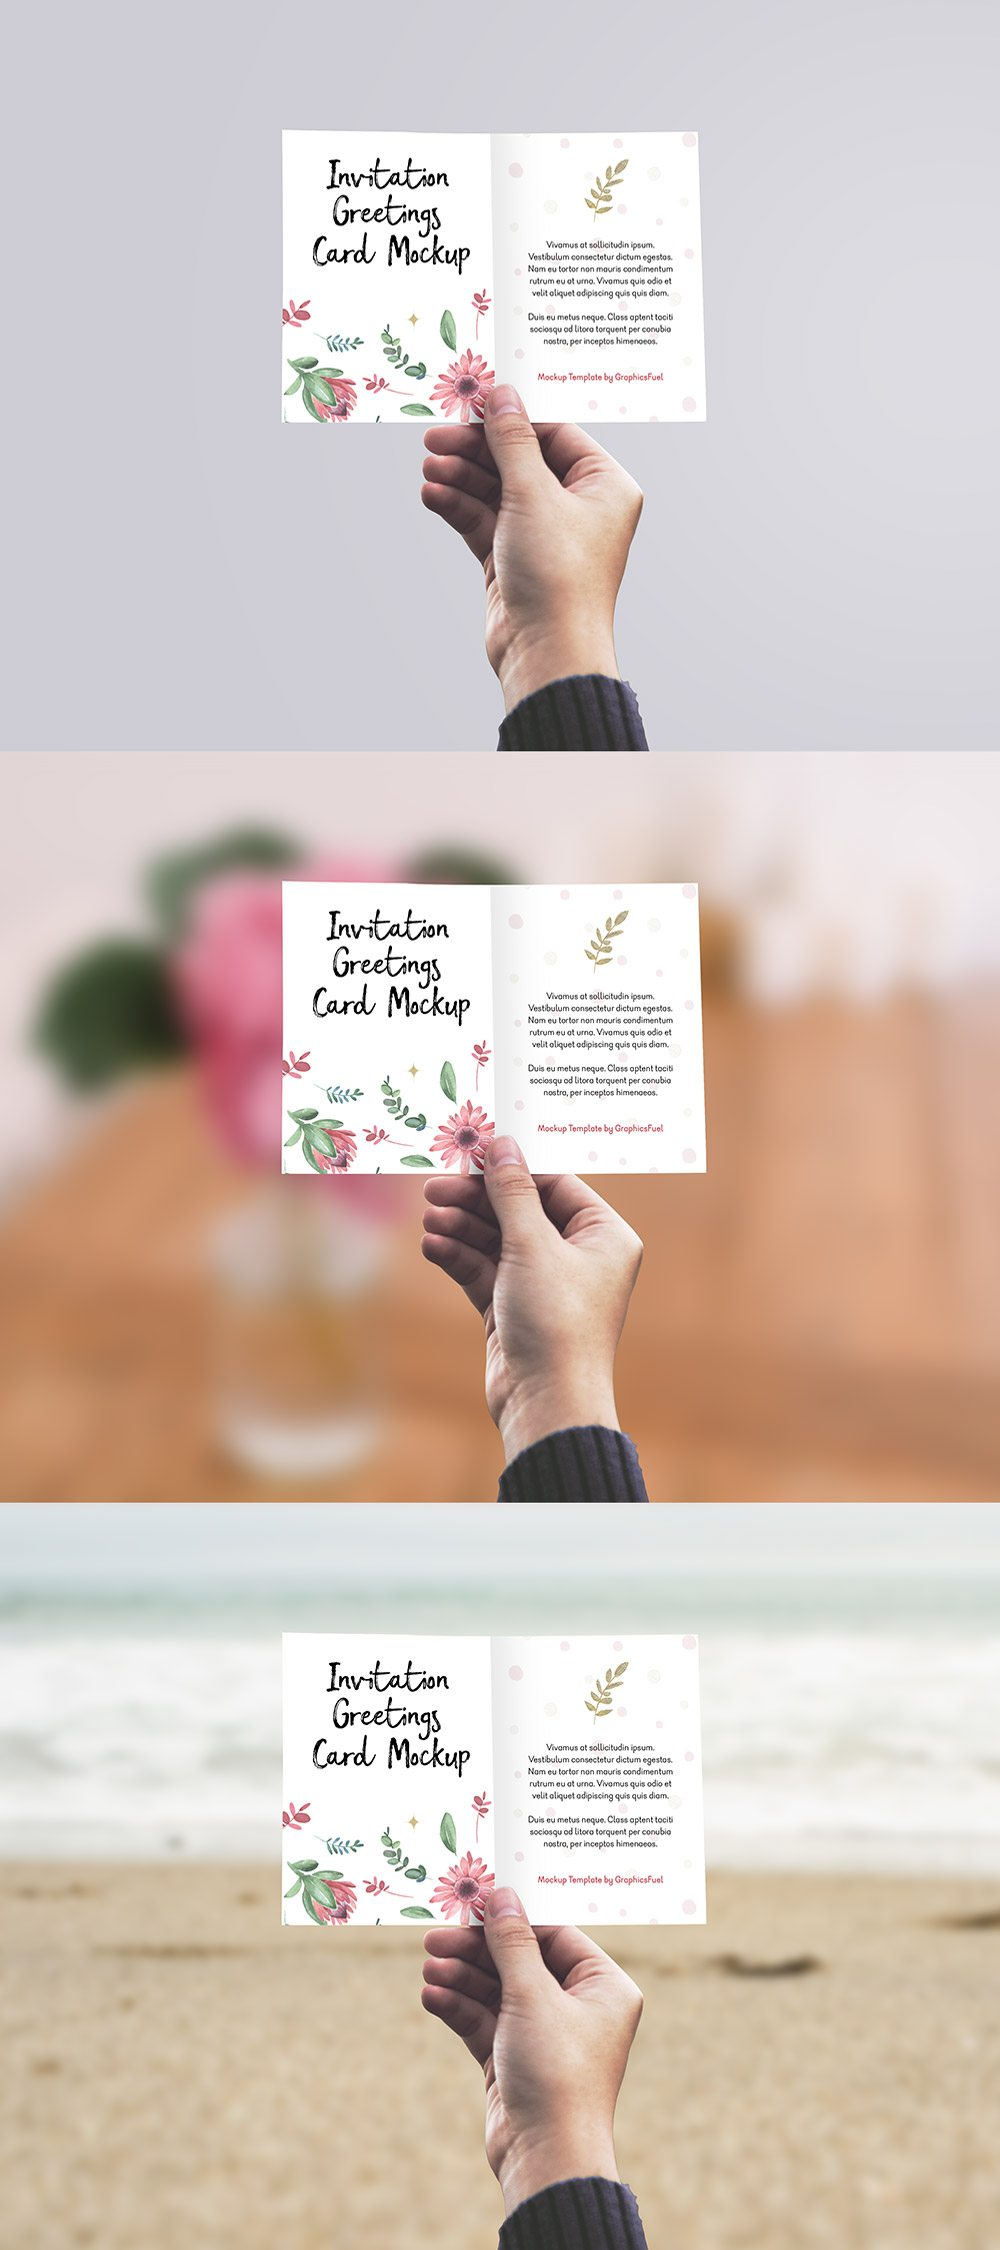 Creative Invitation / Greeting Card in Hand Mockup PSD